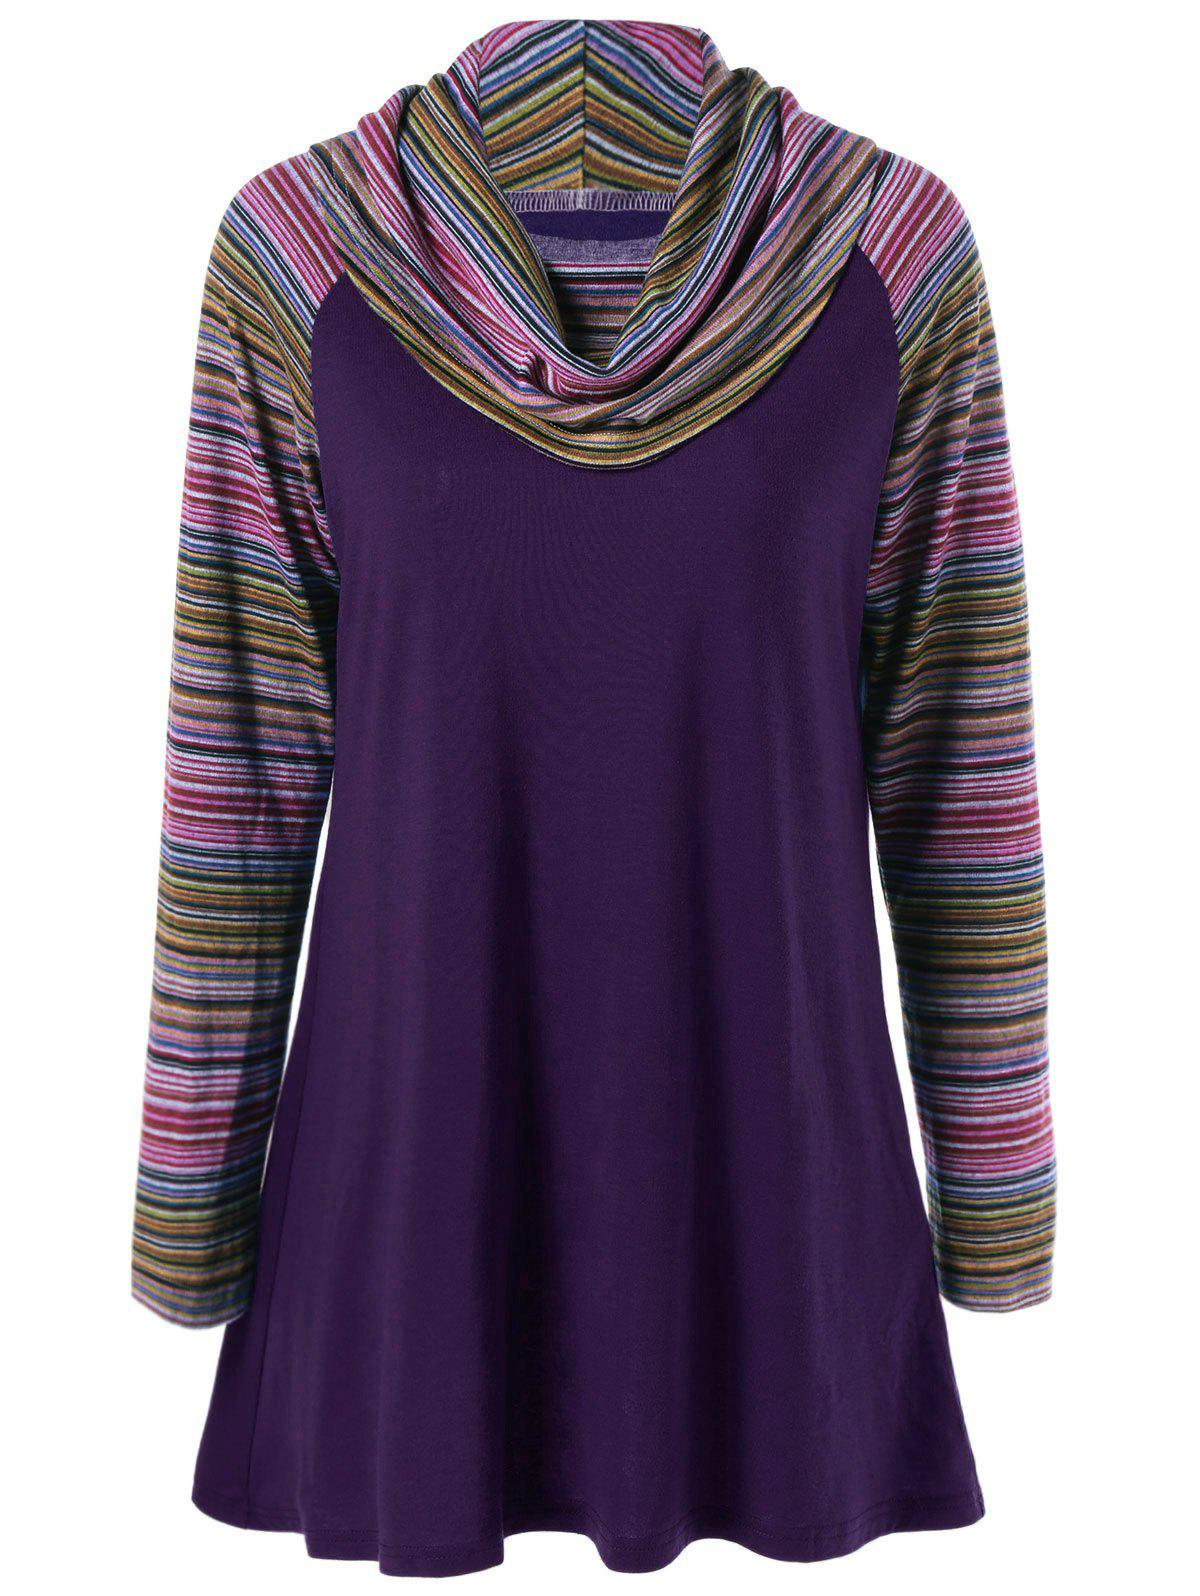 Cowl Neck Colorful Striped T-Shirt 193634113